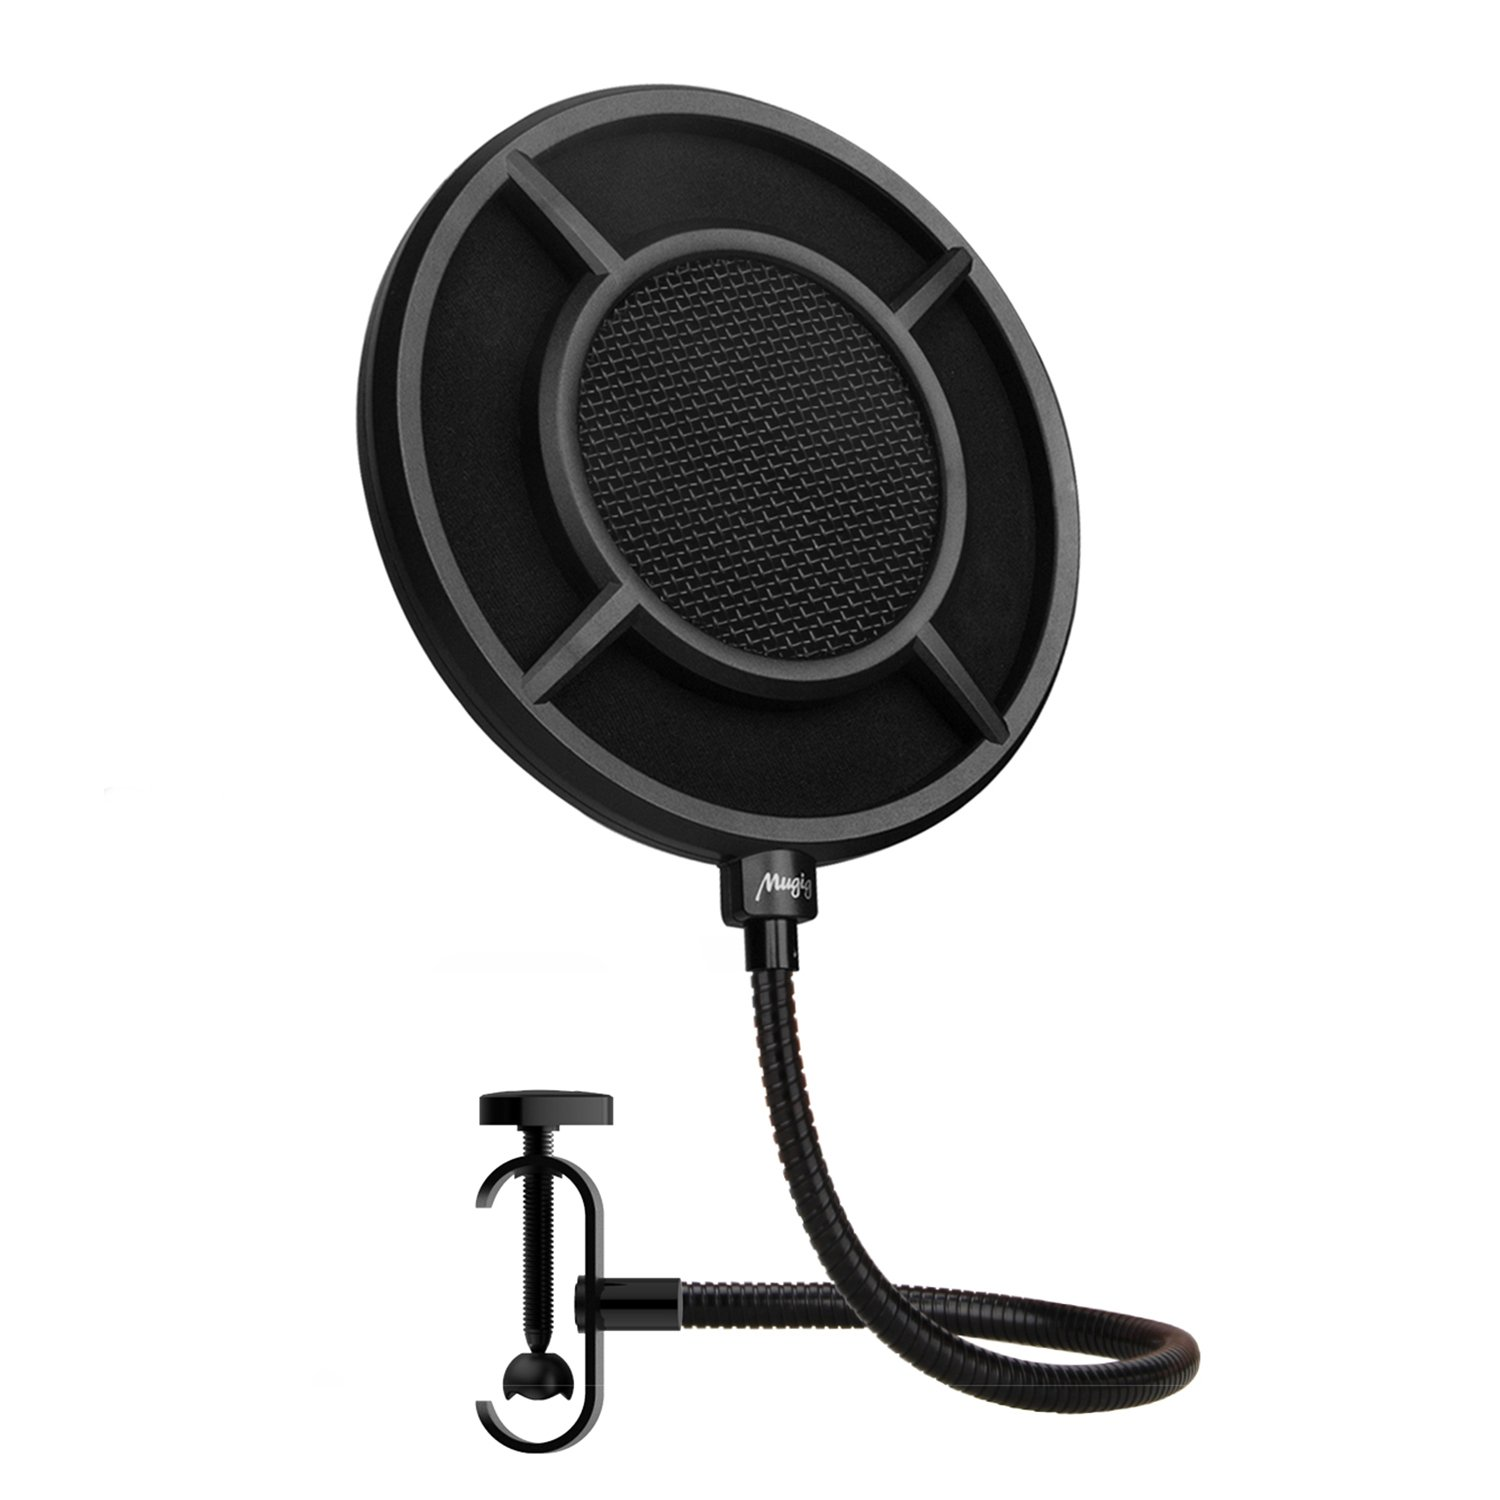 Mugig Pop Filter Mesh Metal Mezzanine with Double Nylon layer, Reinforce Arm, Studio Microphone Wind Screen for Recording and Broadcasting 6 inch NP-1